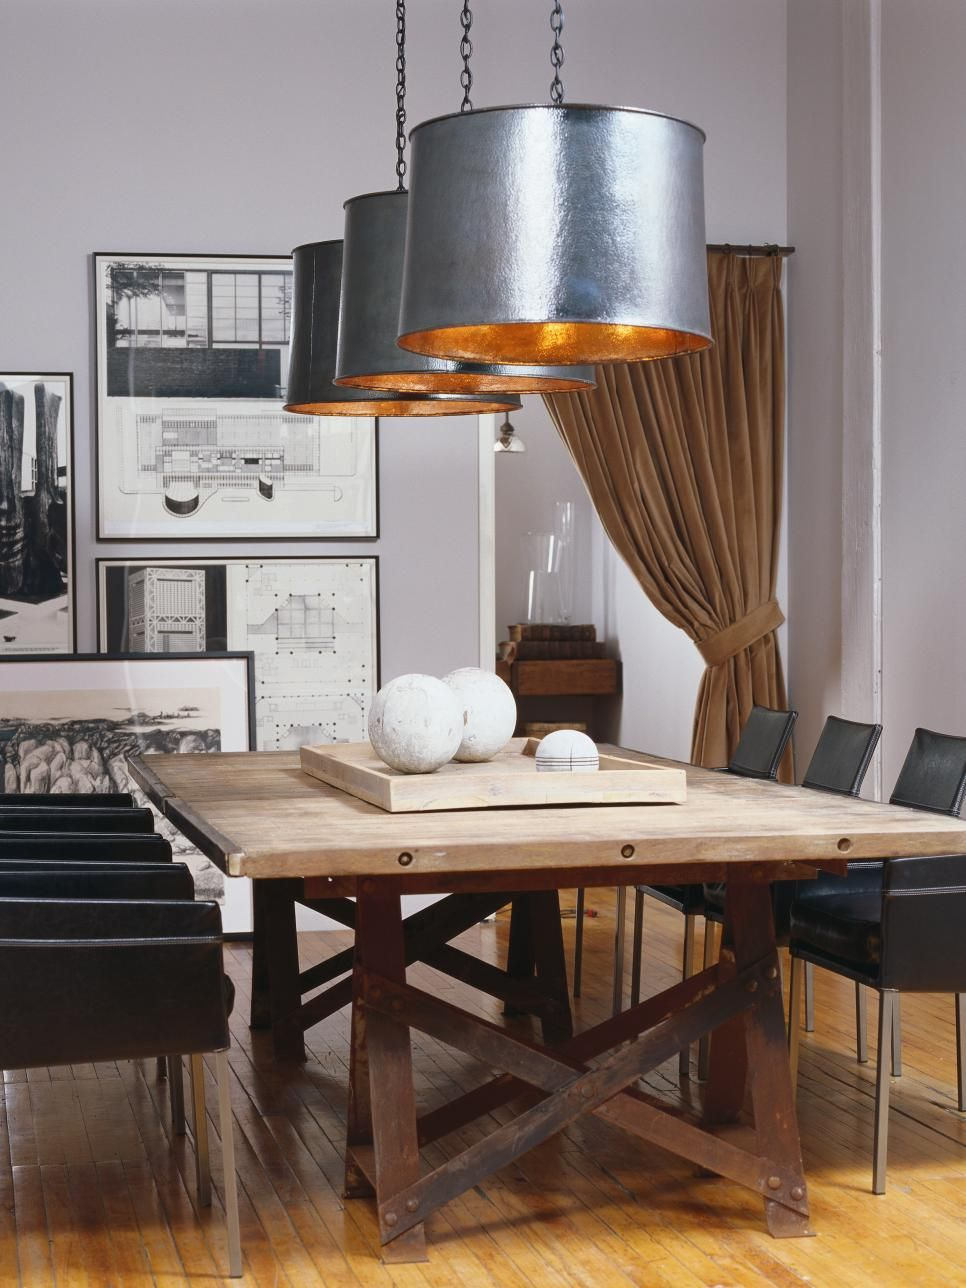 6 Dining Room Trends To Try  Formal Dining Rooms And Wood Table Captivating Trends In Dining Rooms Review